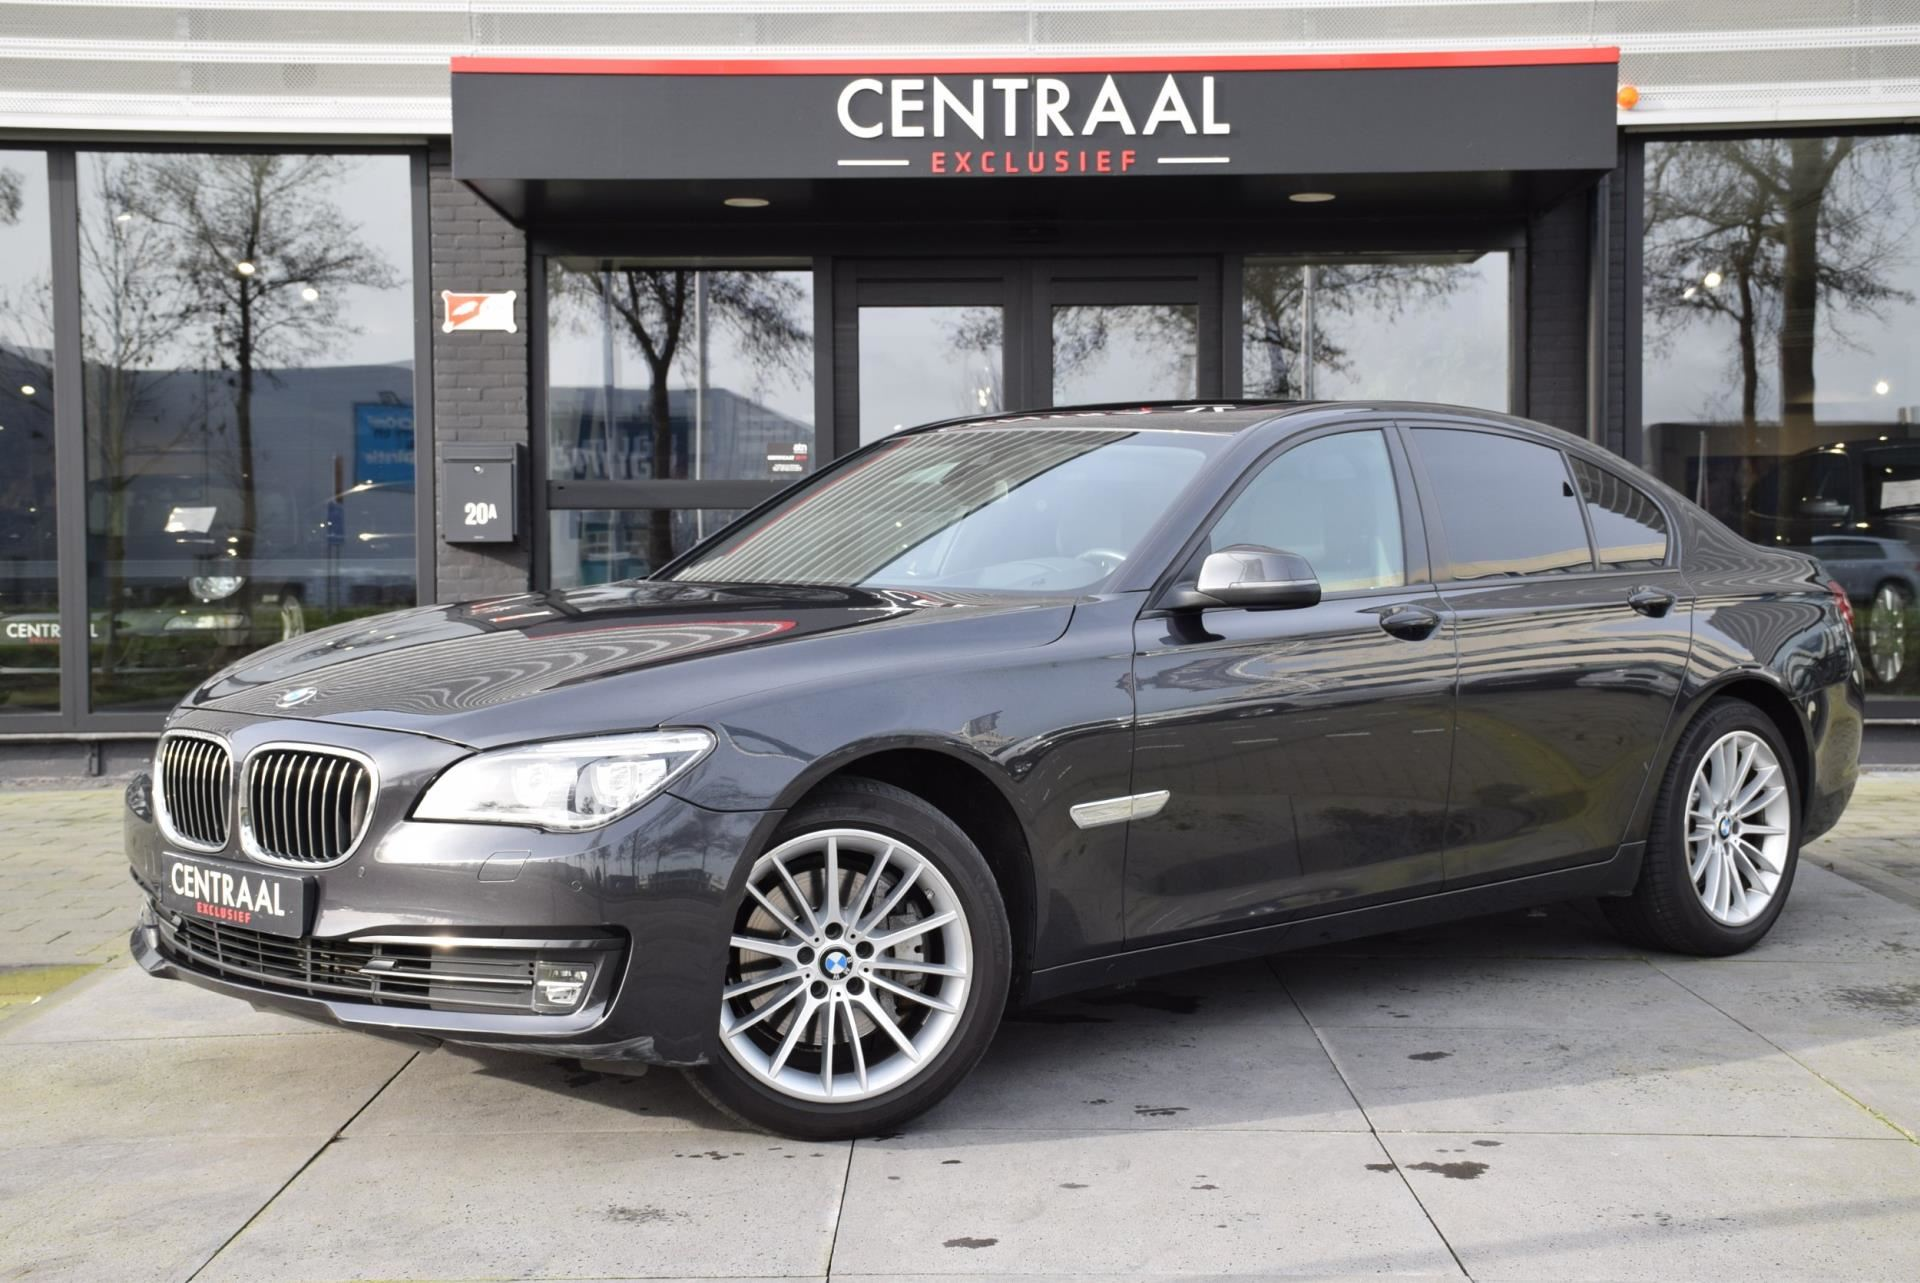 BMW 7-serie occasion - Centraal Exclusief B.V.